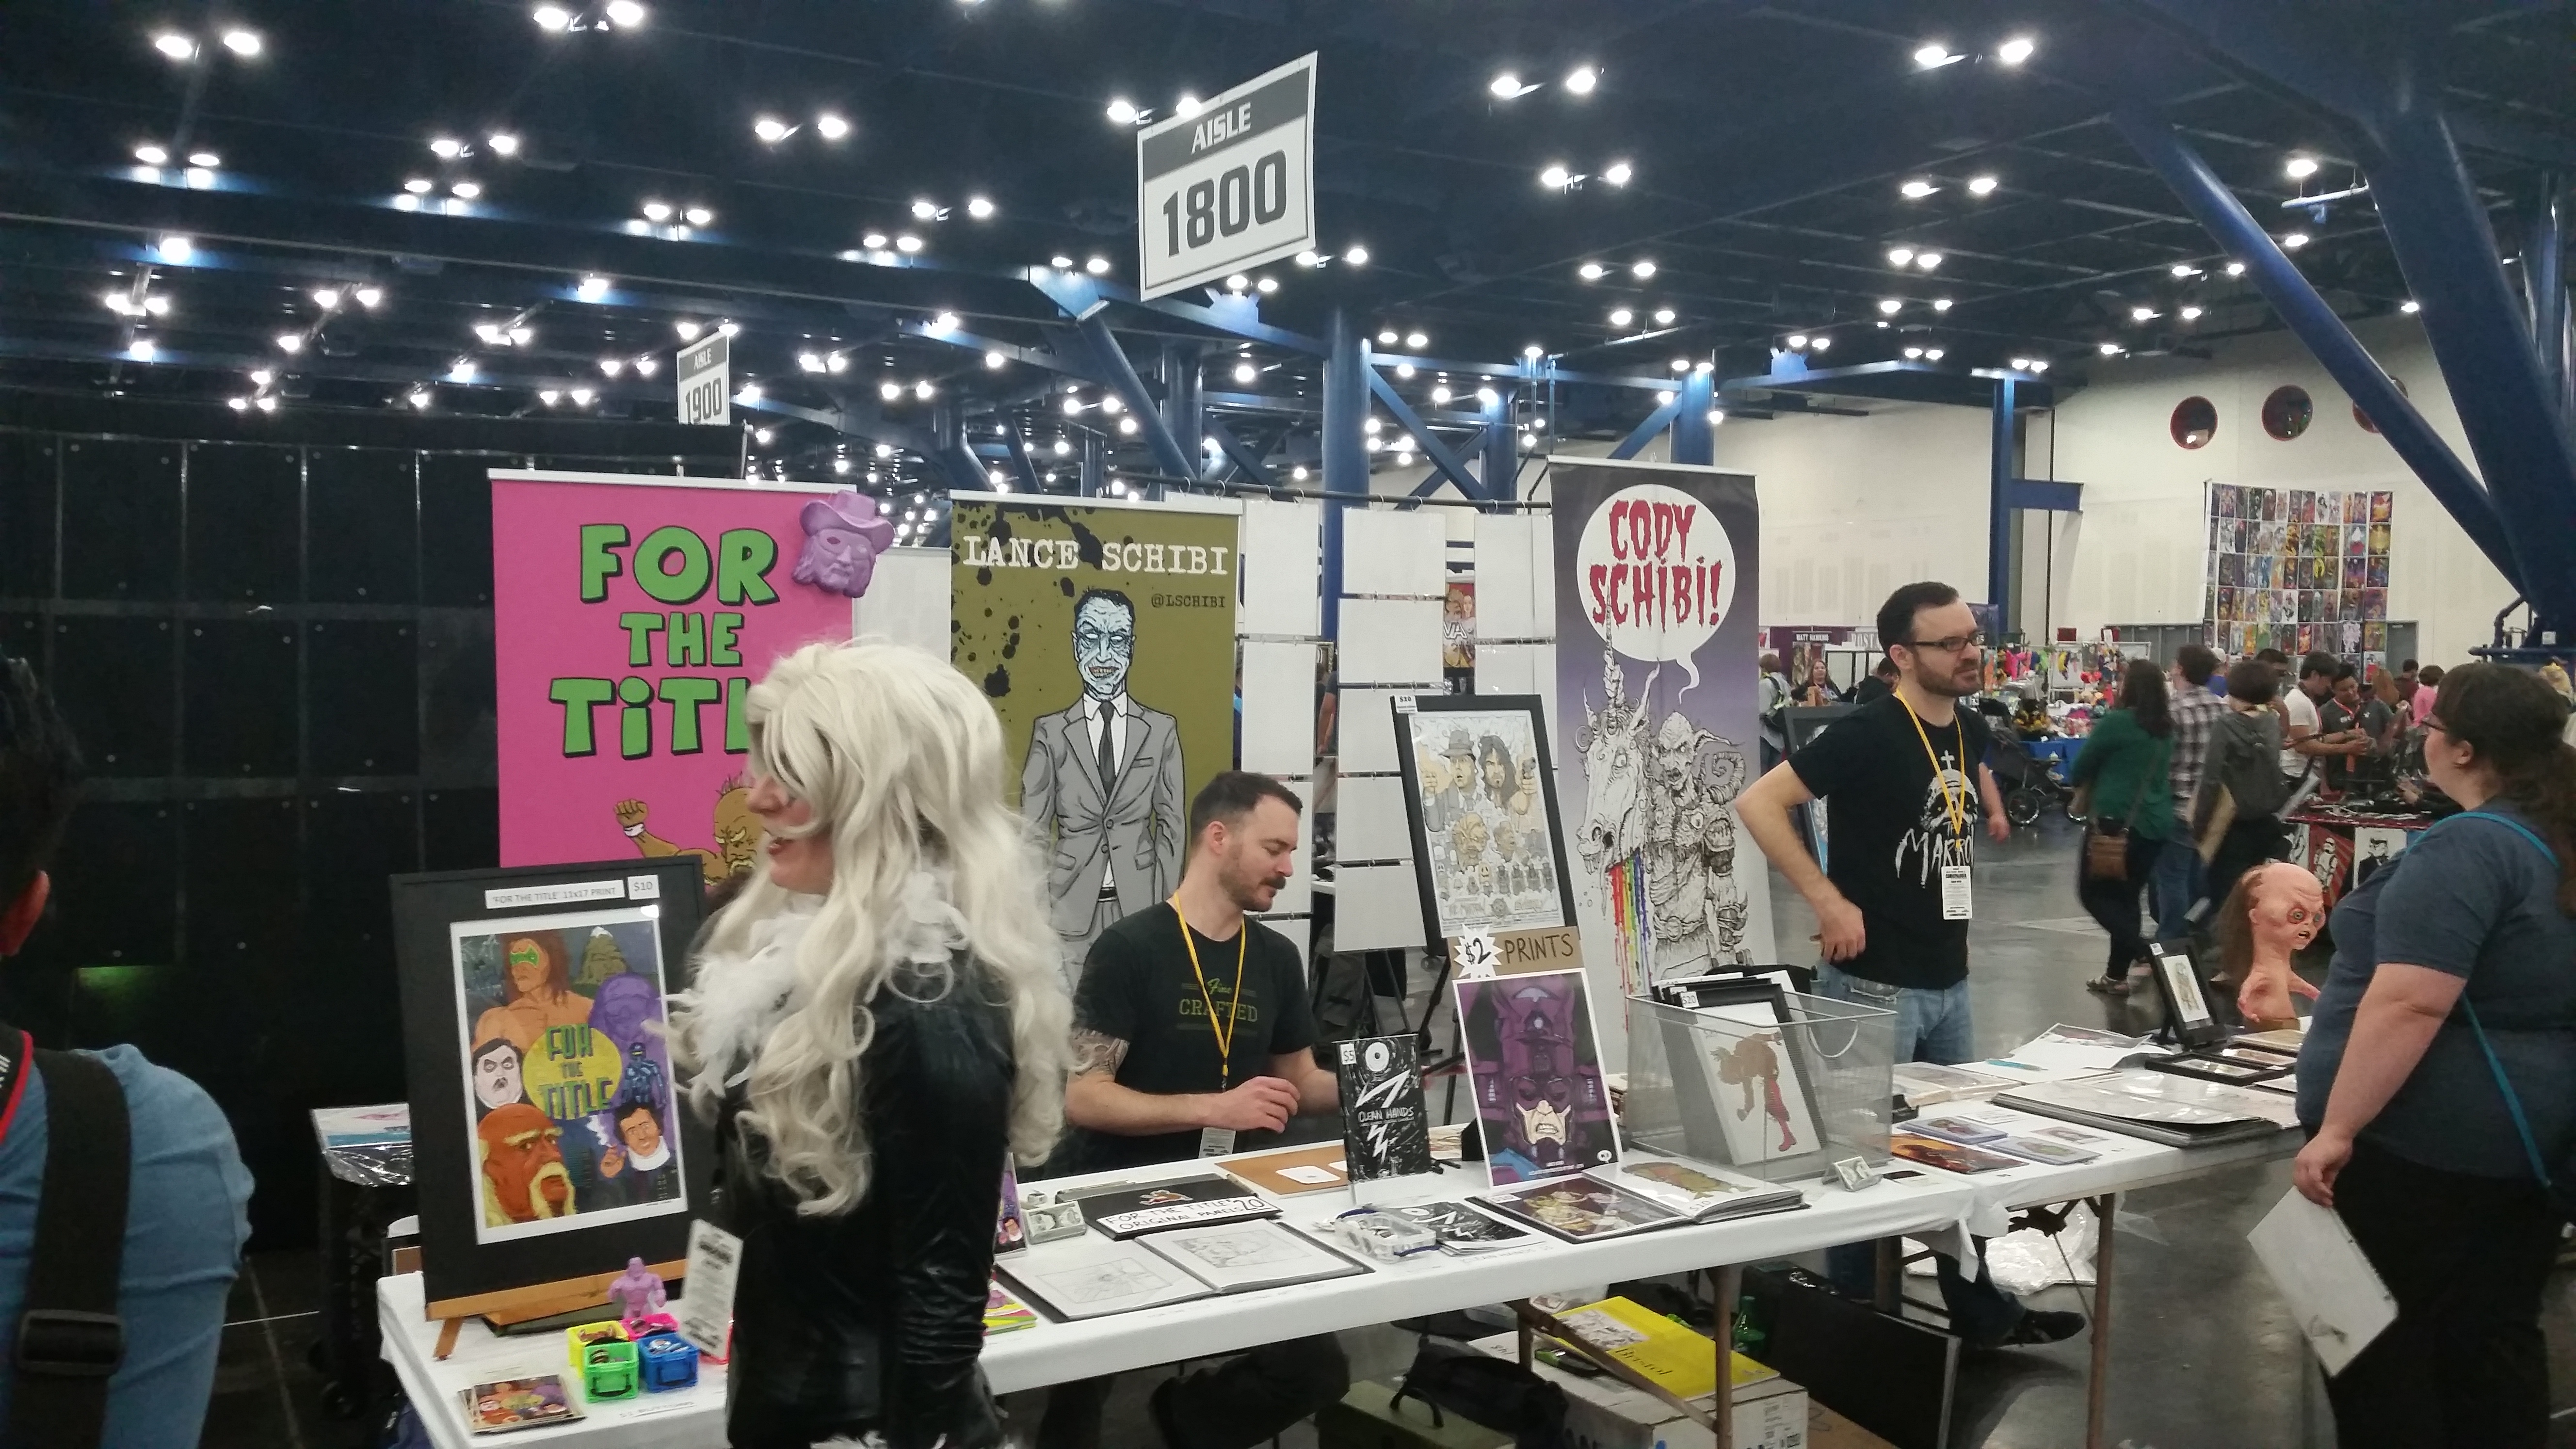 Lance and Cody Schibi had some great art and books for sale